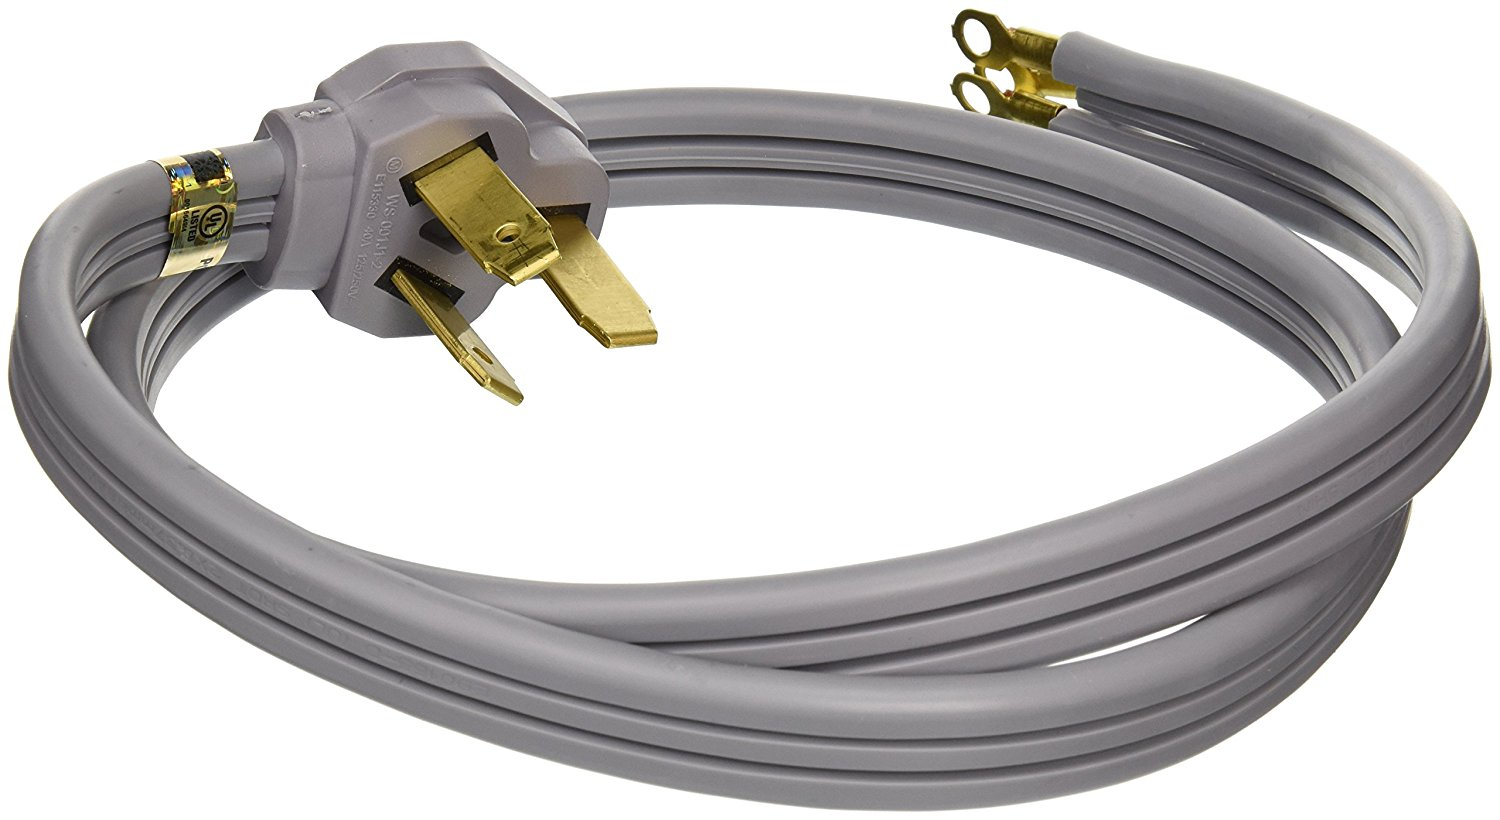 General Electric WX09X10006 3 Wire 40amp Range Cord, 4-Feet - Save ...